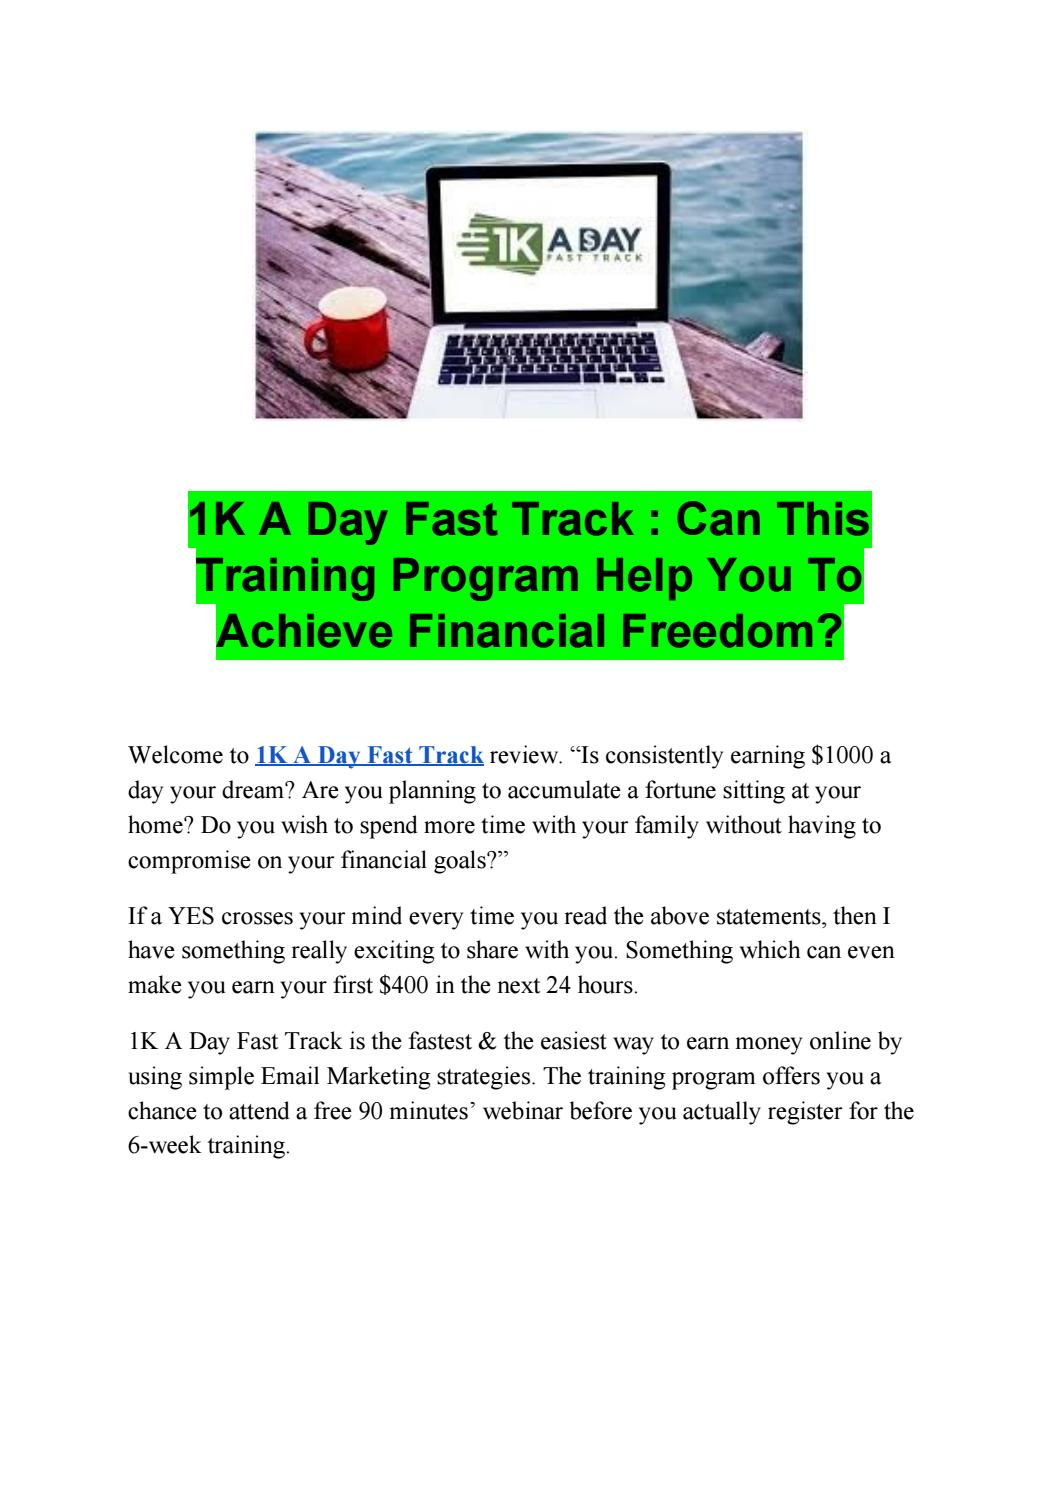 Cheap 1k A Day Fast Track Training Program New For Sale